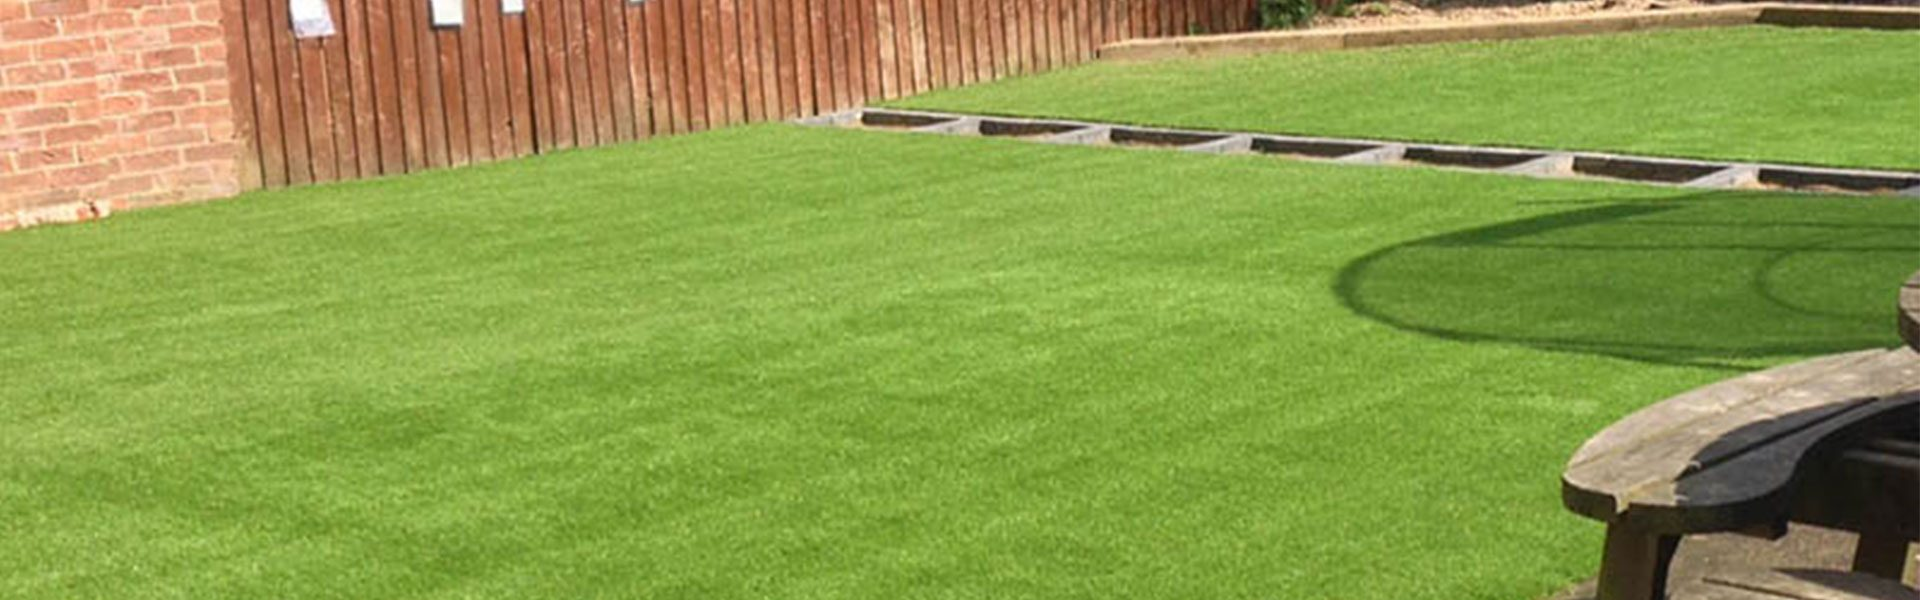 Add Aesthetic Value To Your Home With An Artificial Lawn